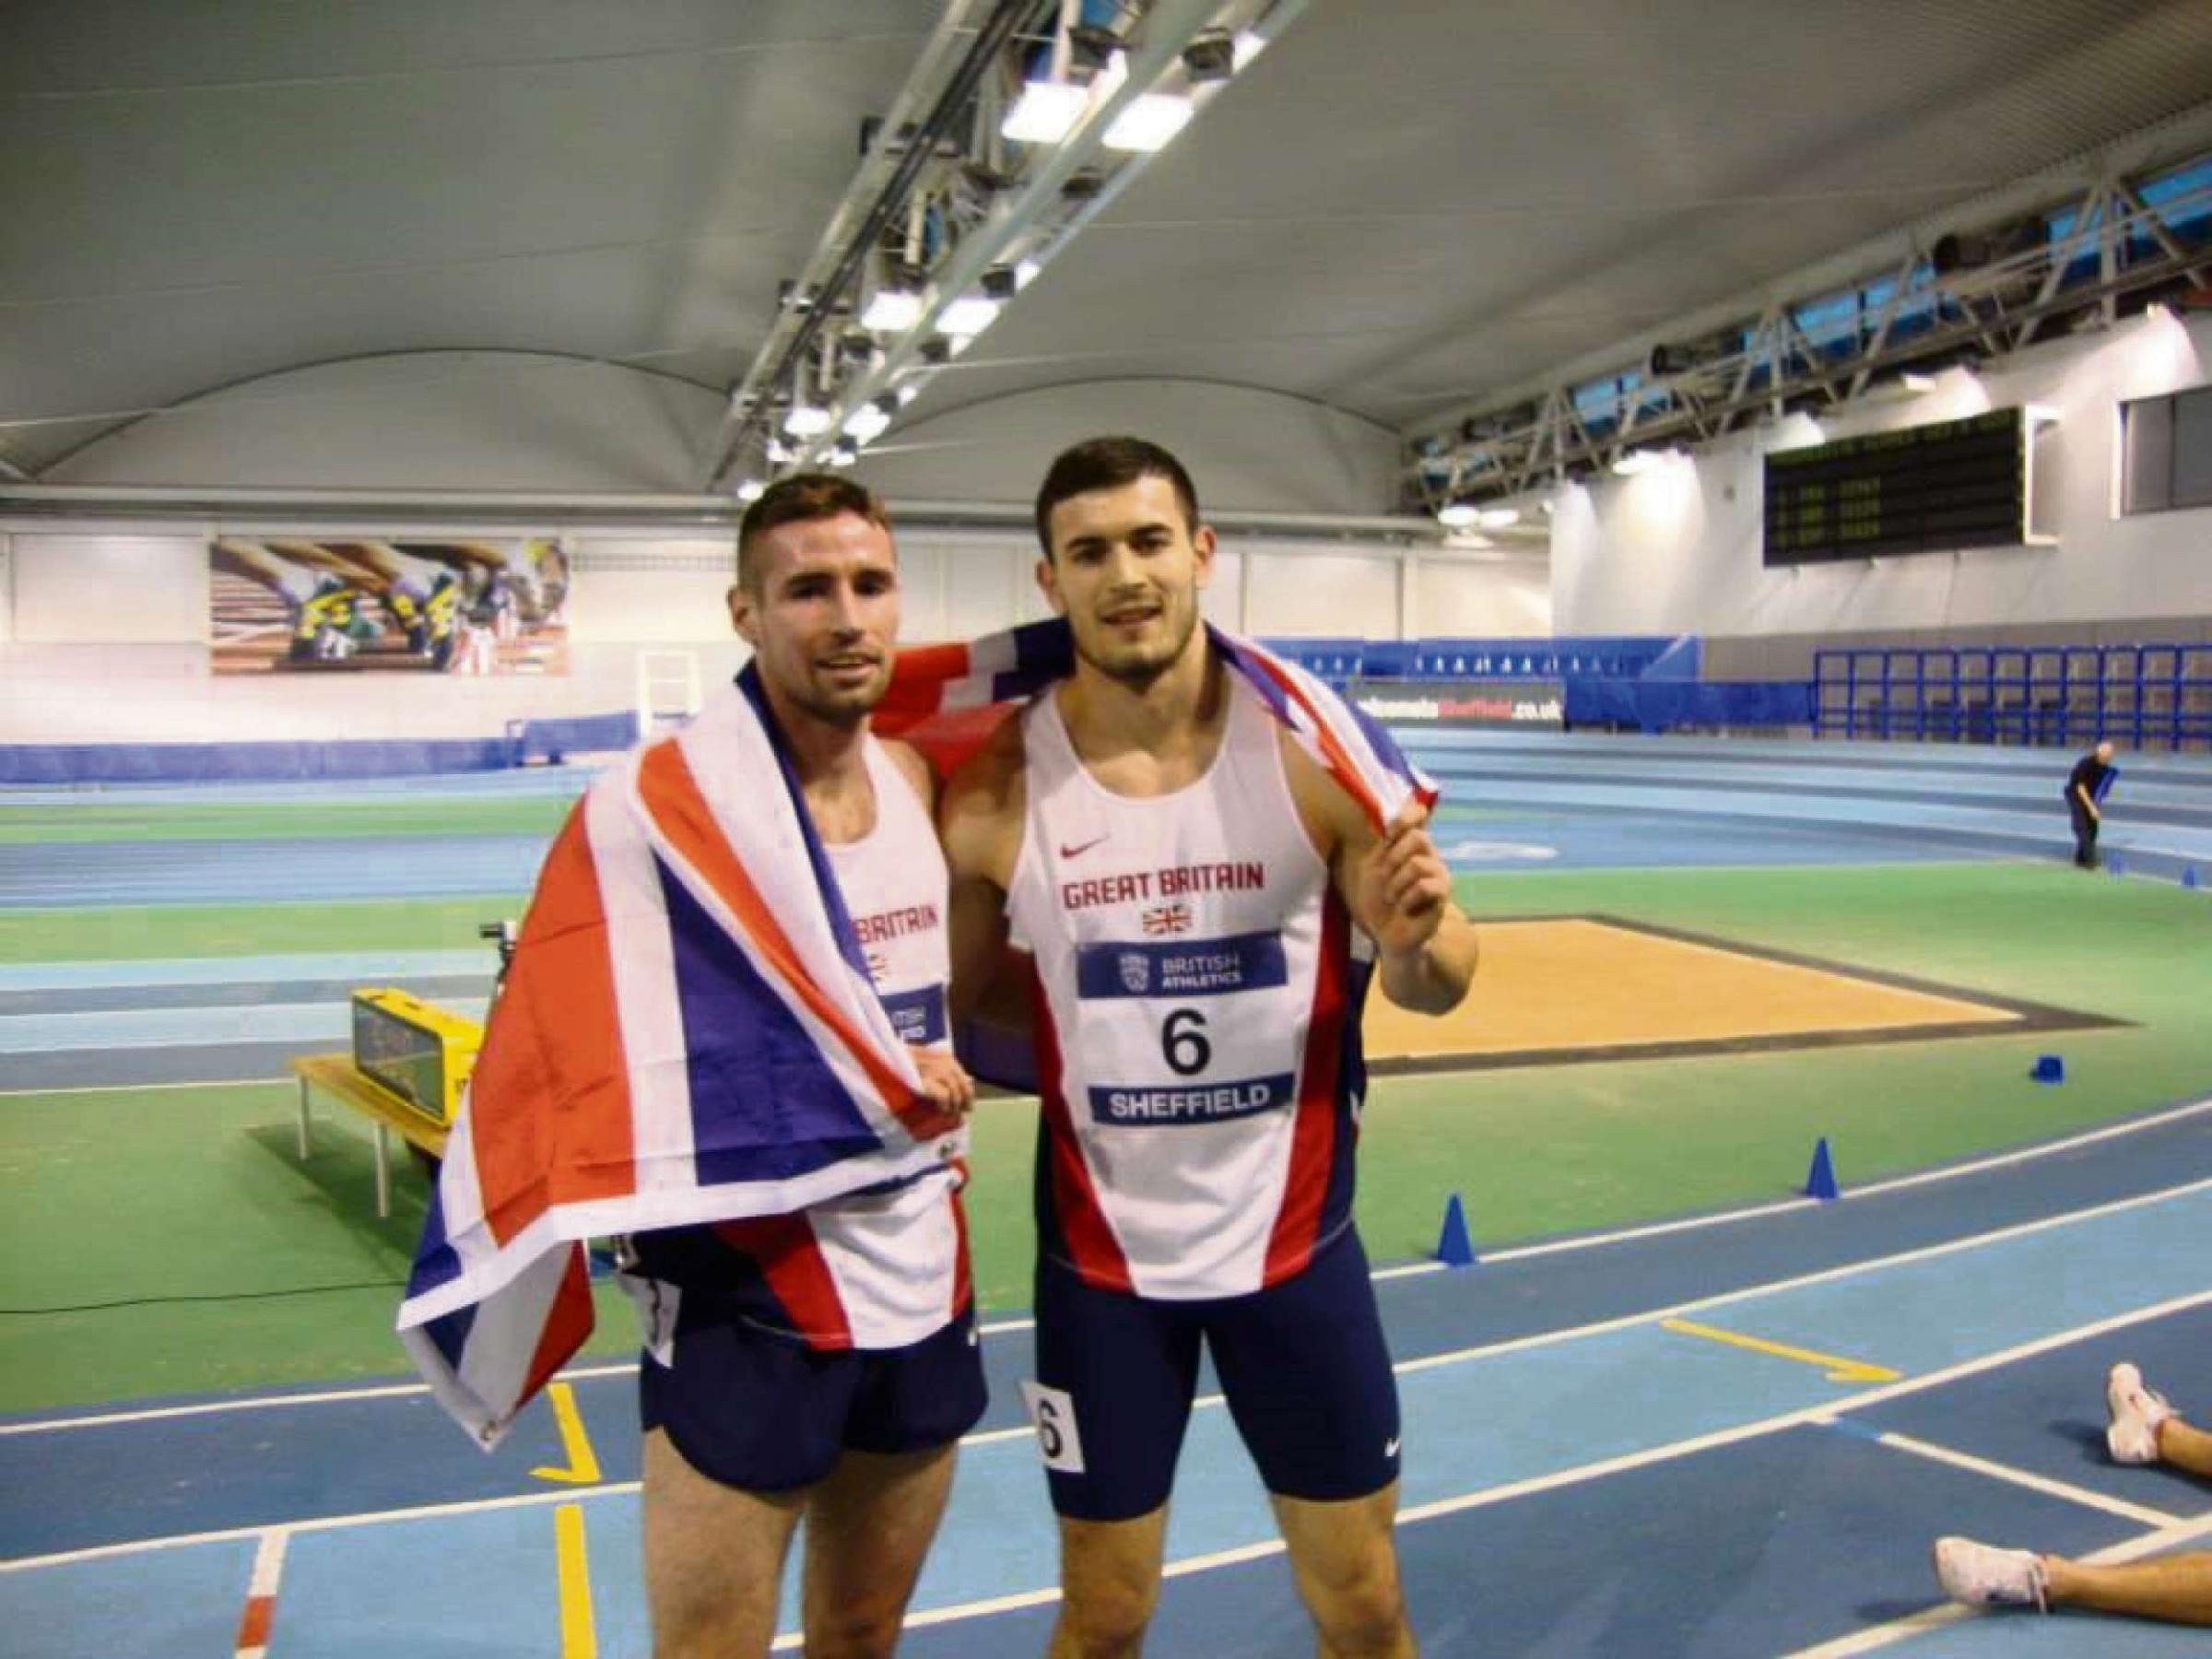 Two decathlons in one week to qualify for Commonwealth Games